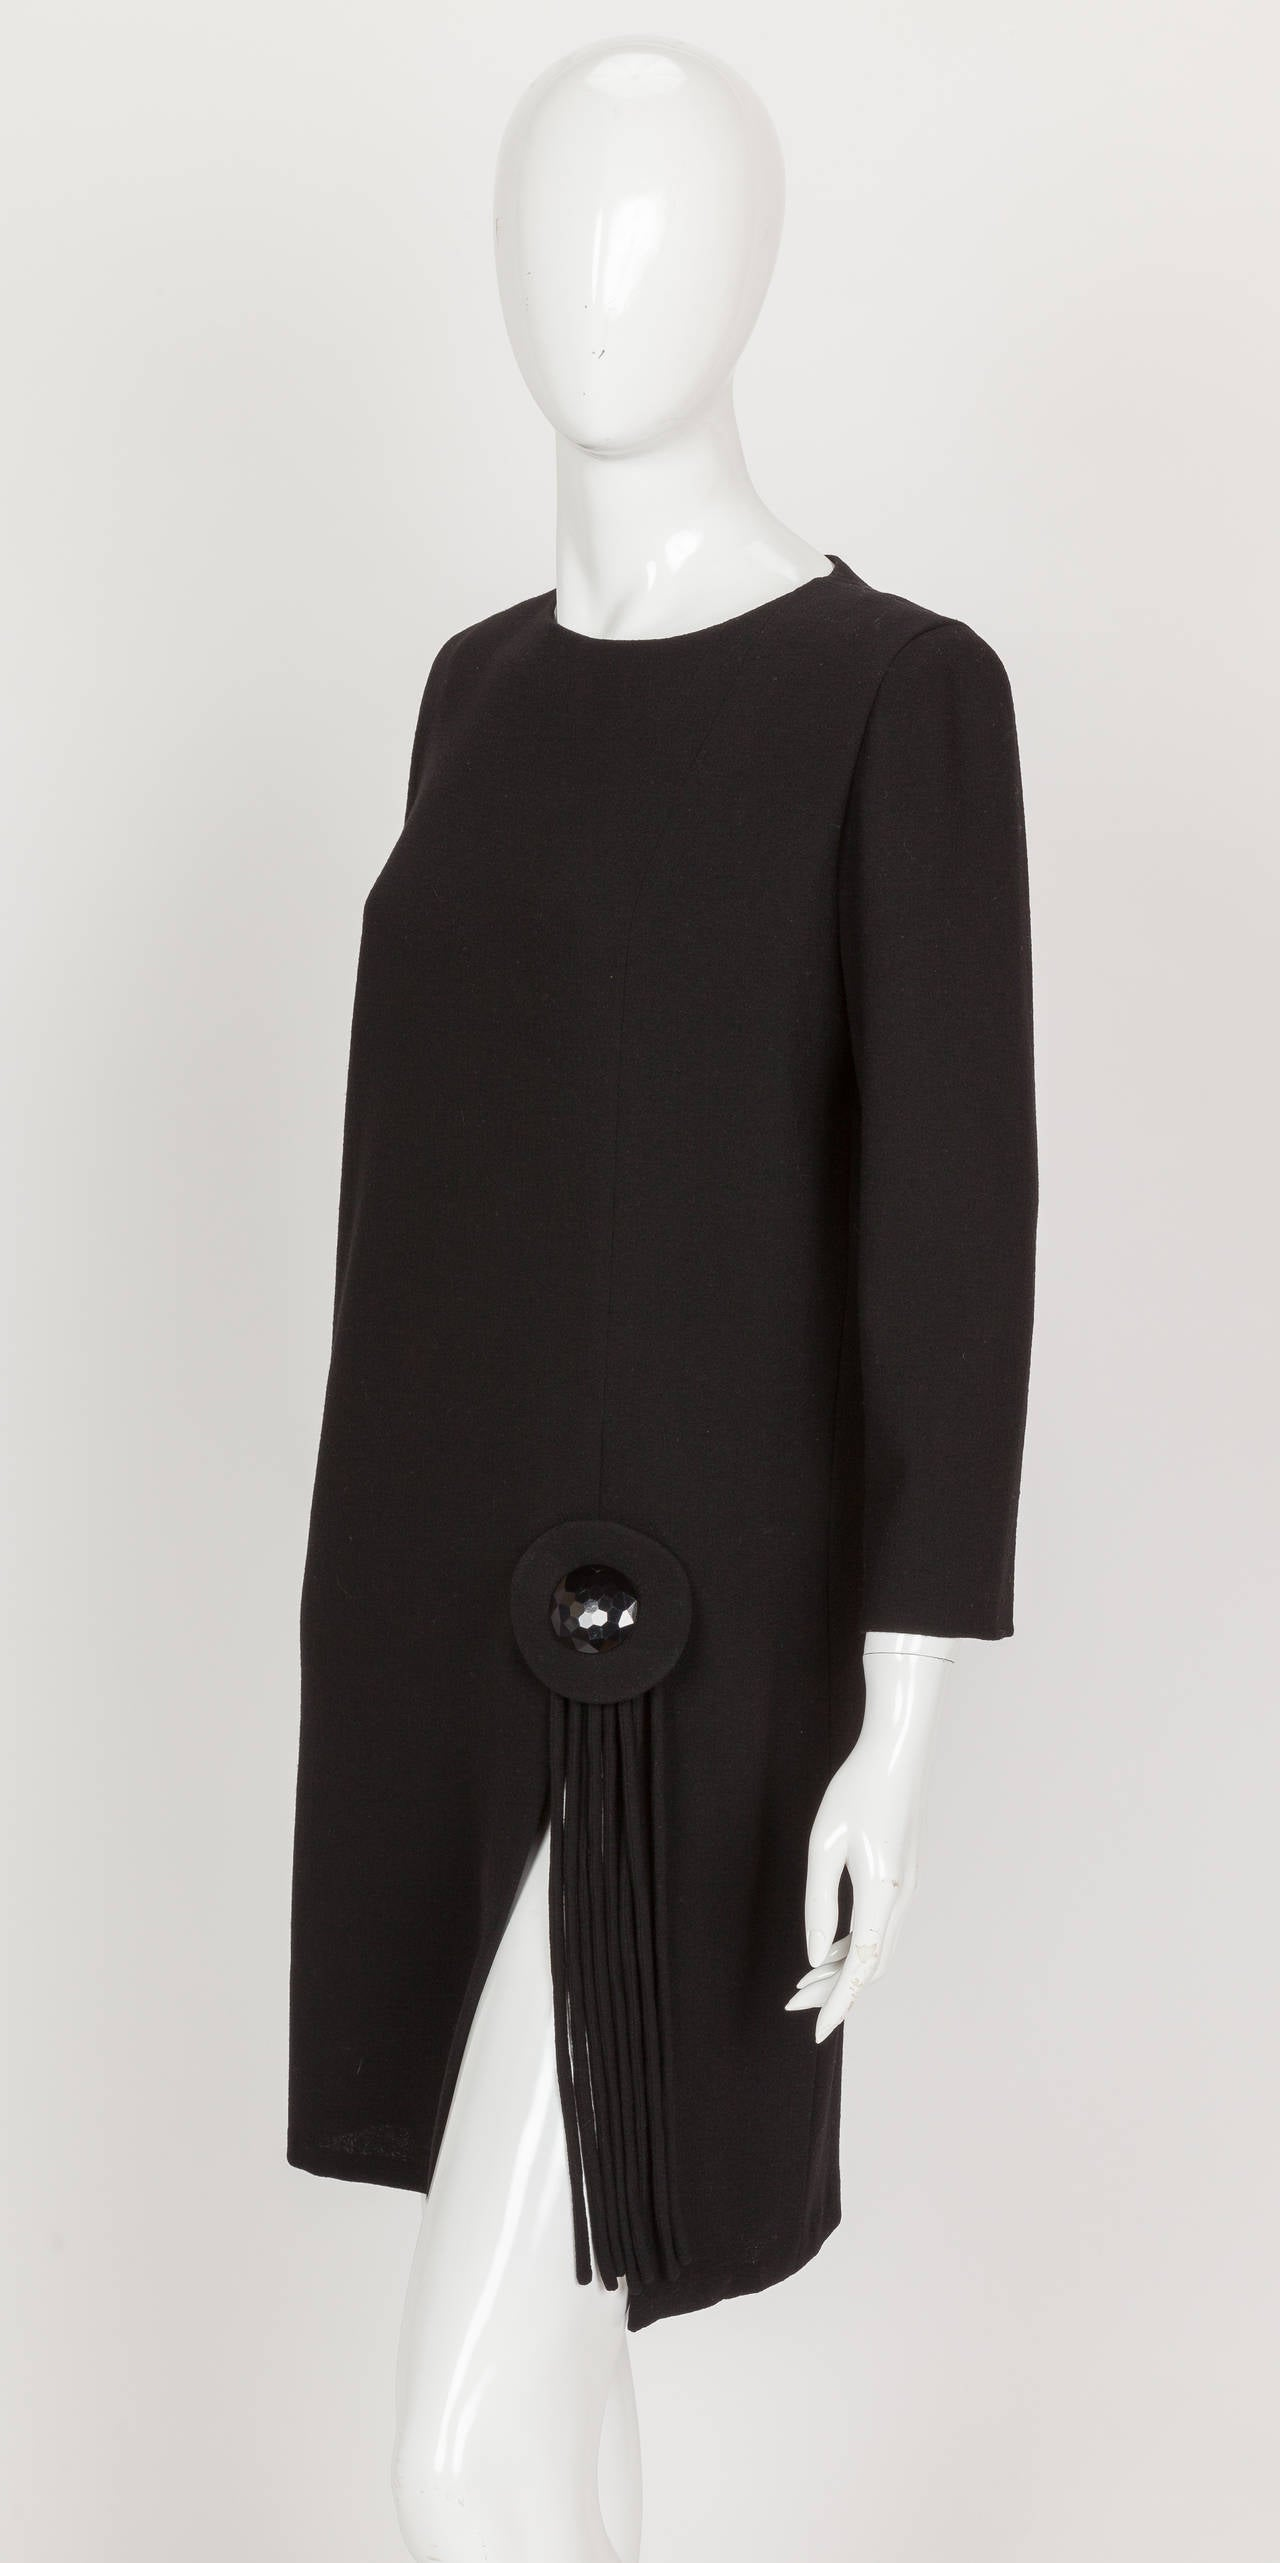 Pierre Cardin Haute Couture Black Wool Cocktail Dress w/Thigh High Slit ca. 1992 4